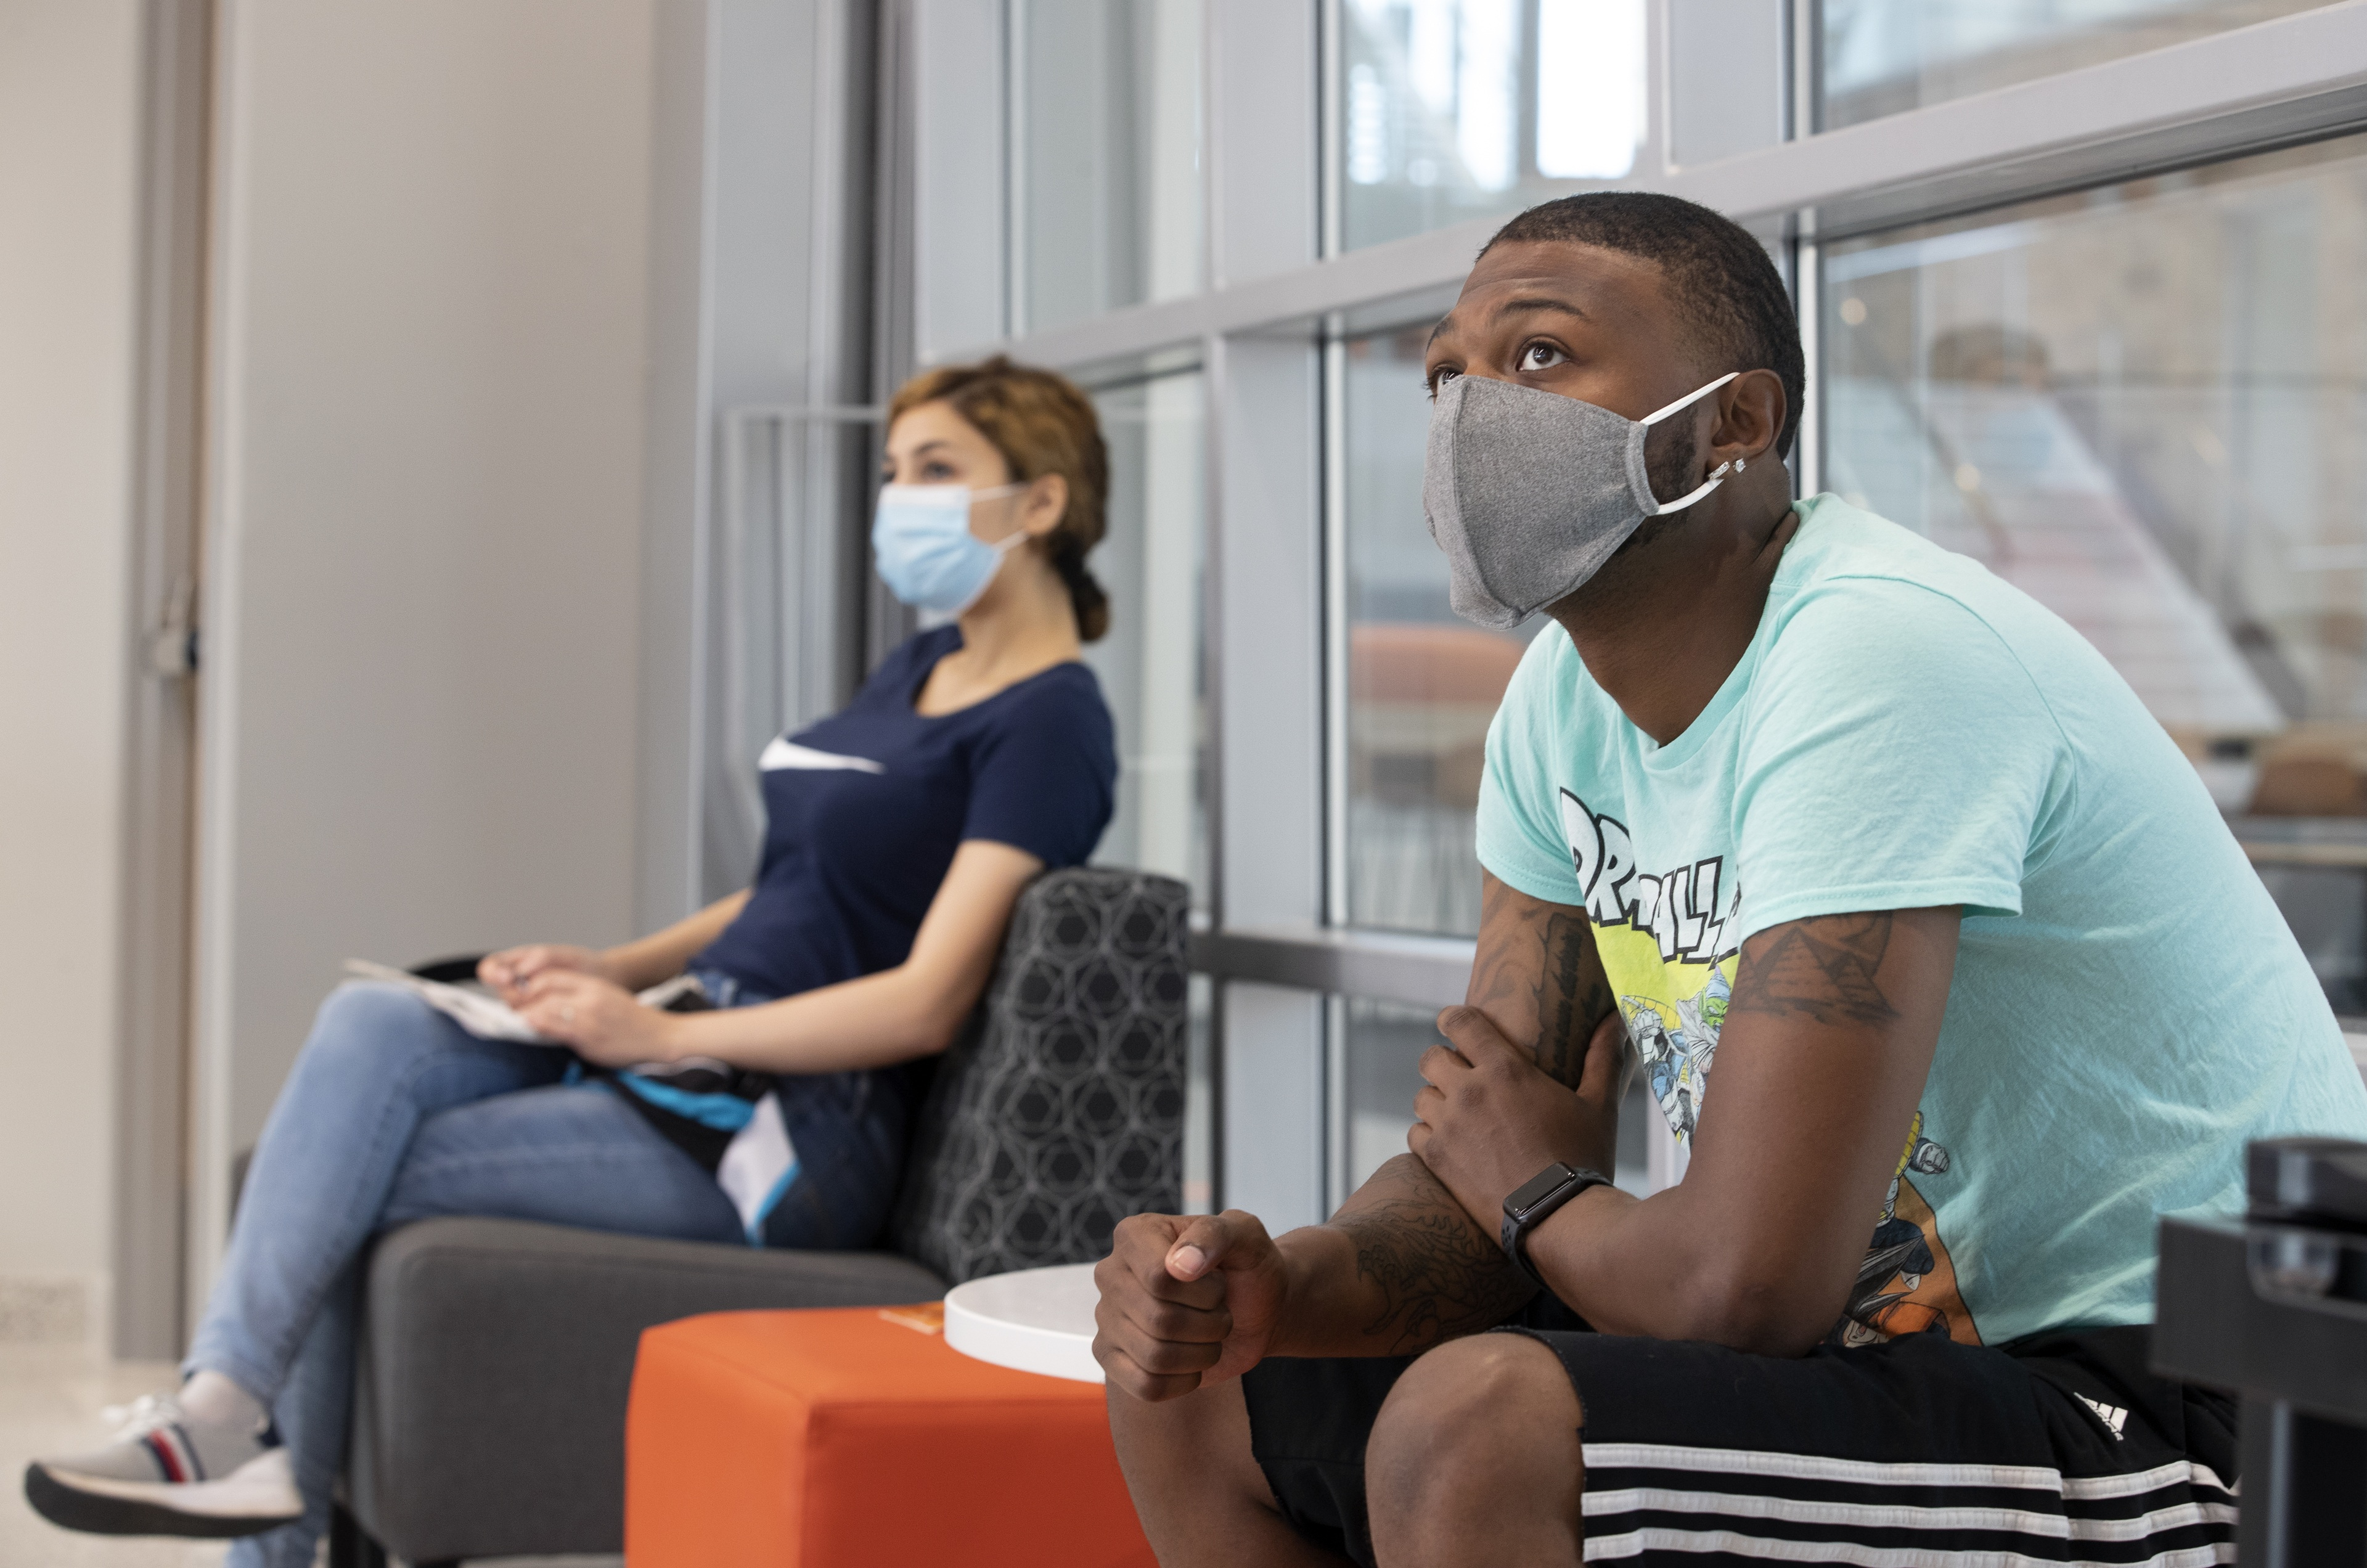 Two students sitting on campus with masks on